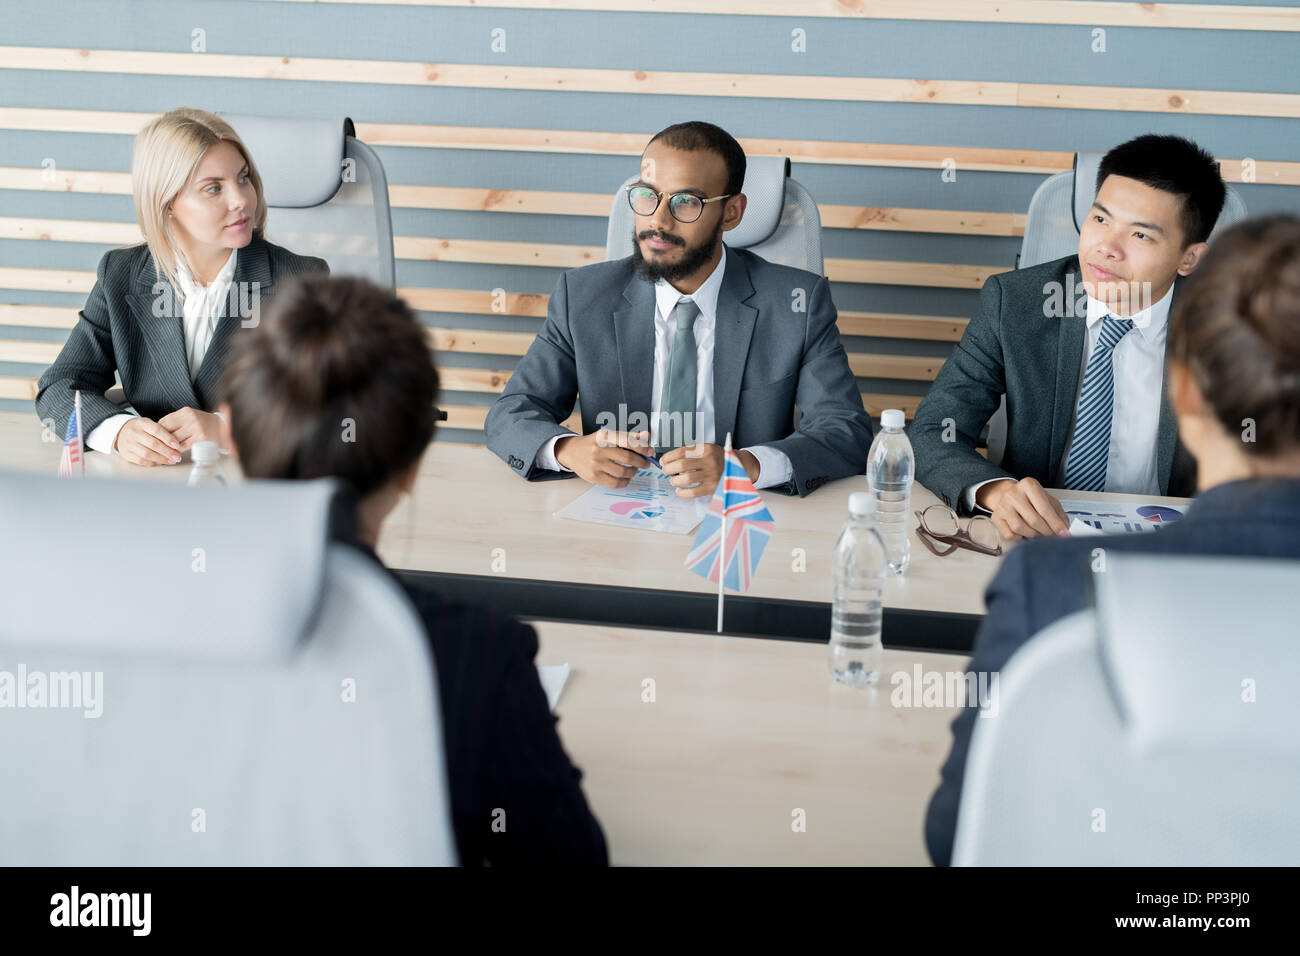 Brainstorming at business meeting - Stock Image